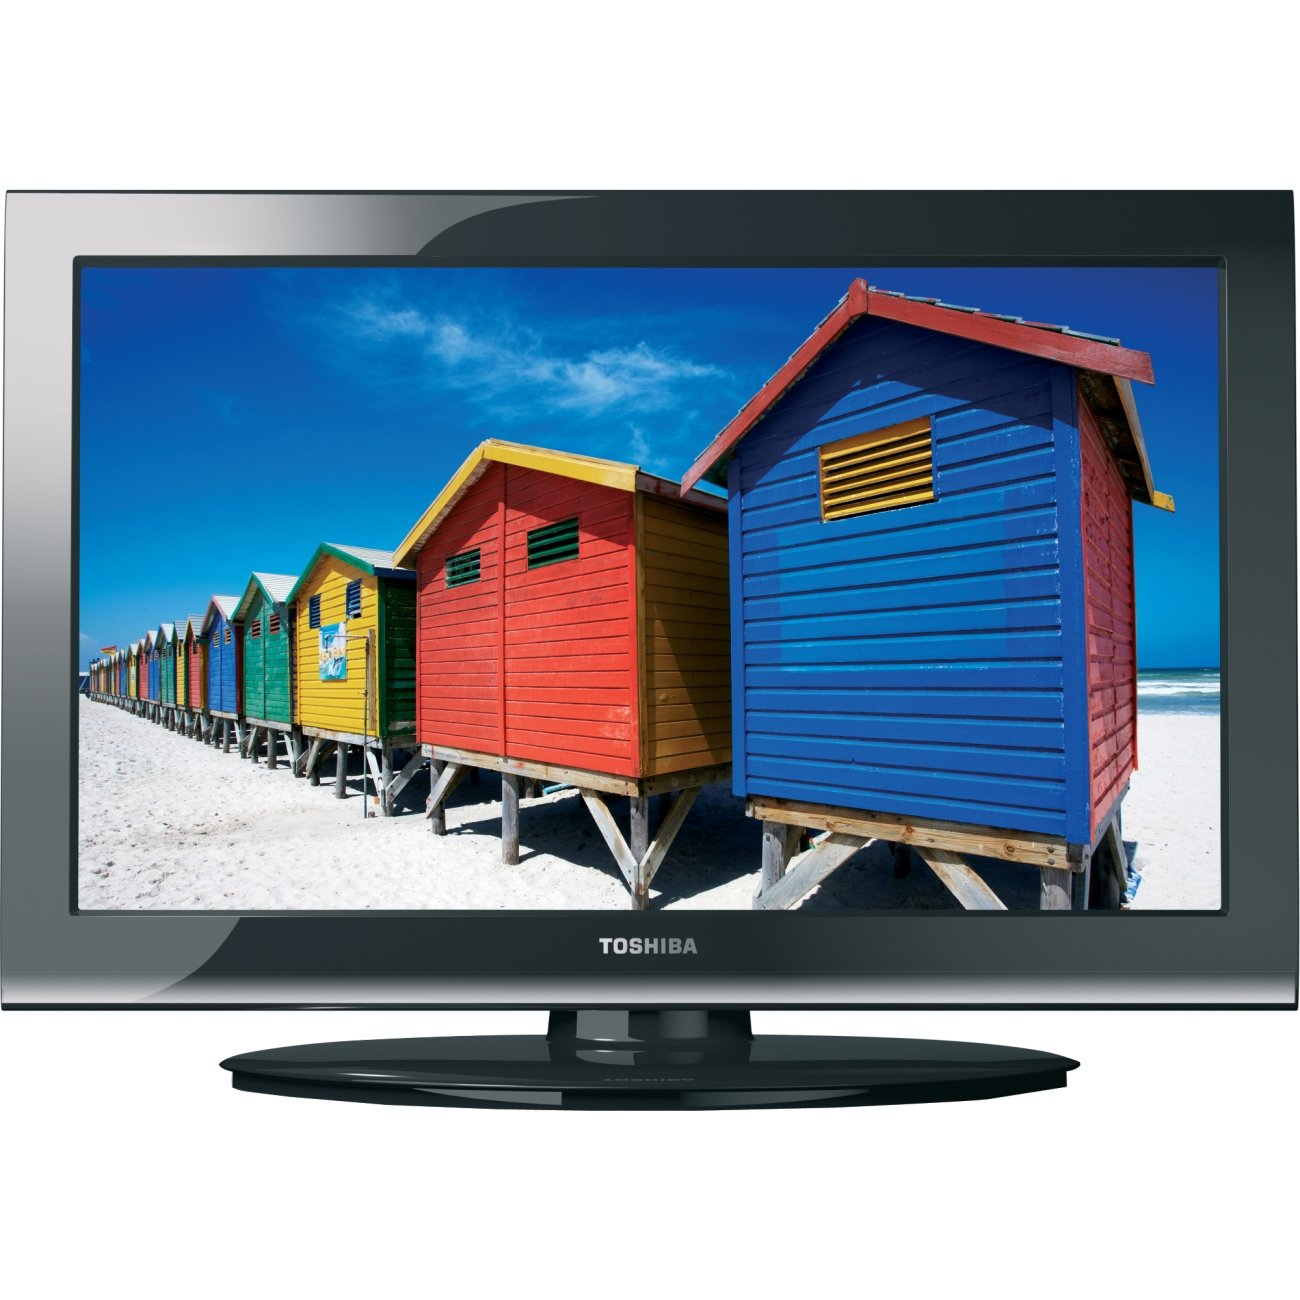 Amazon.com: Toshiba 32C110U 32-Inch 720p LCD HDTV, Black (2011 Model):  Electronics